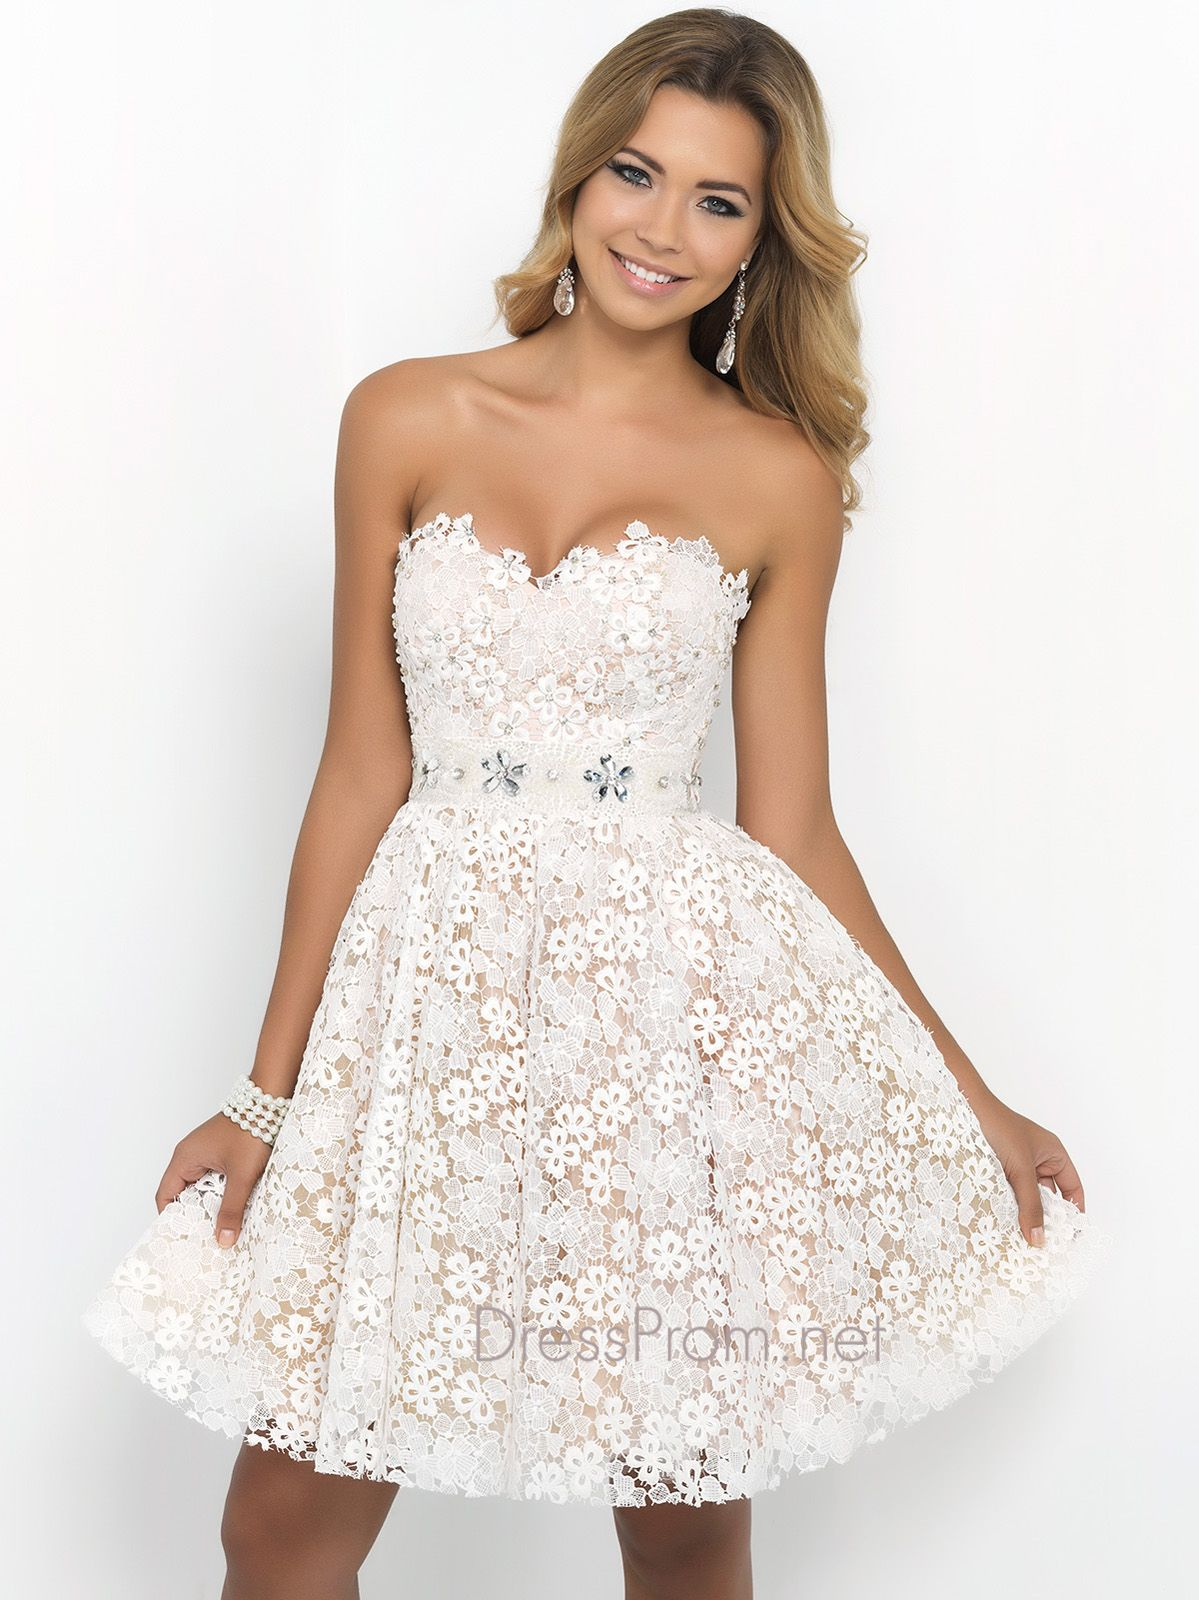 Ideal as a sweet party dress or an adorable prom gown the short